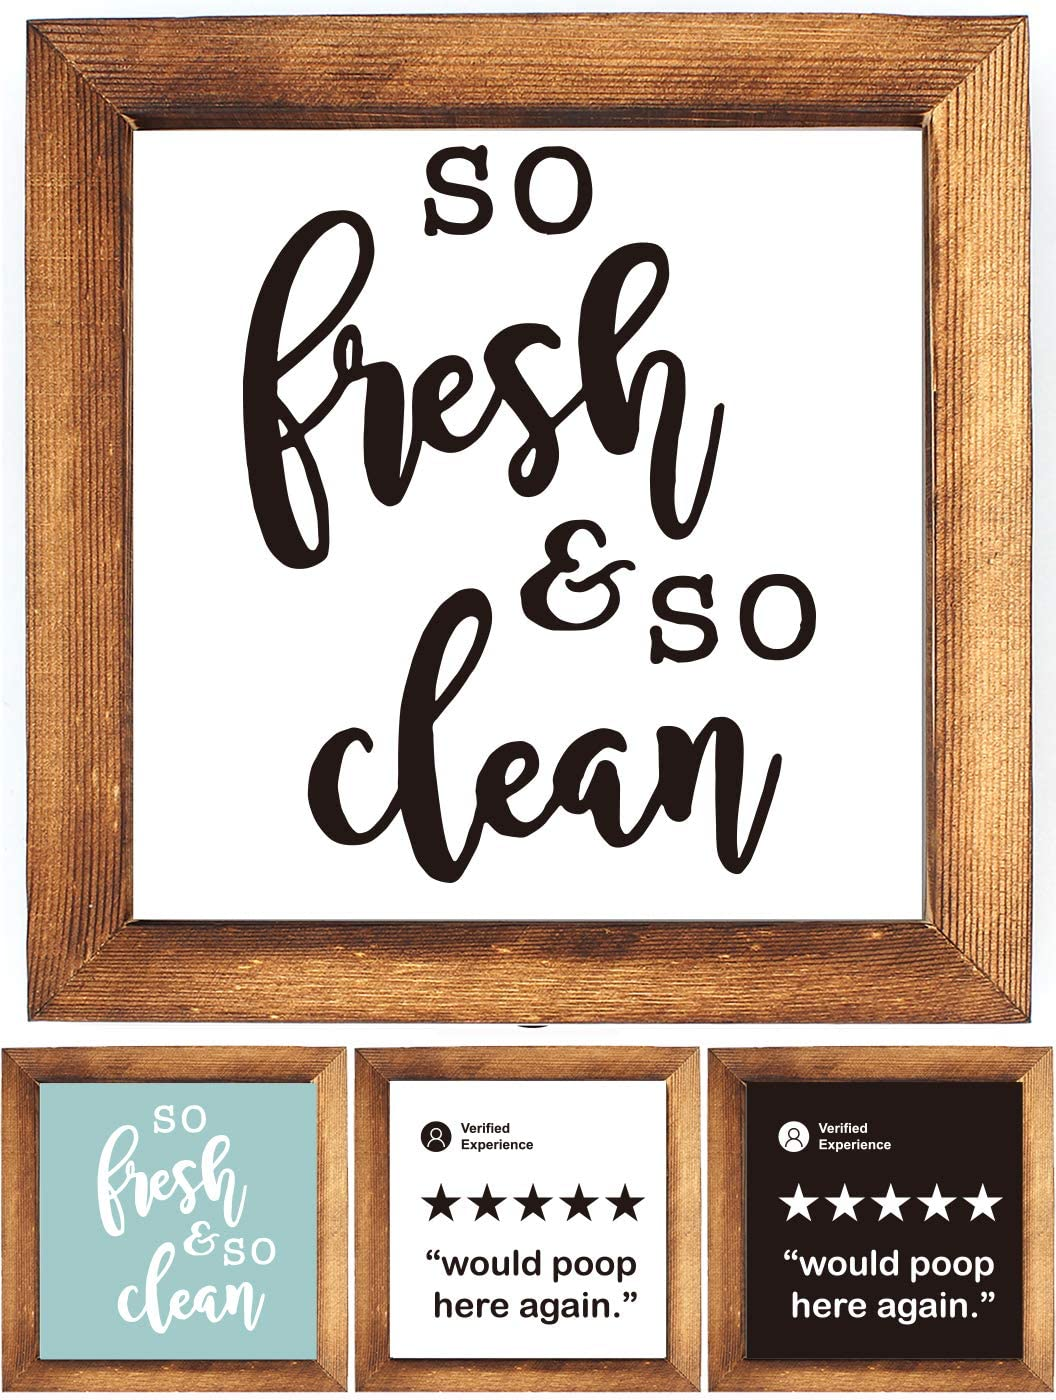 KU-DaYi Wood Framed Block Sign -So Fresh and So Clean Funny Bathroom Quote, Rustic Farmhouse Wooden Wood Framed Wall Hanging Sign Art Decor for Guest Bathroom Toilet Decoration